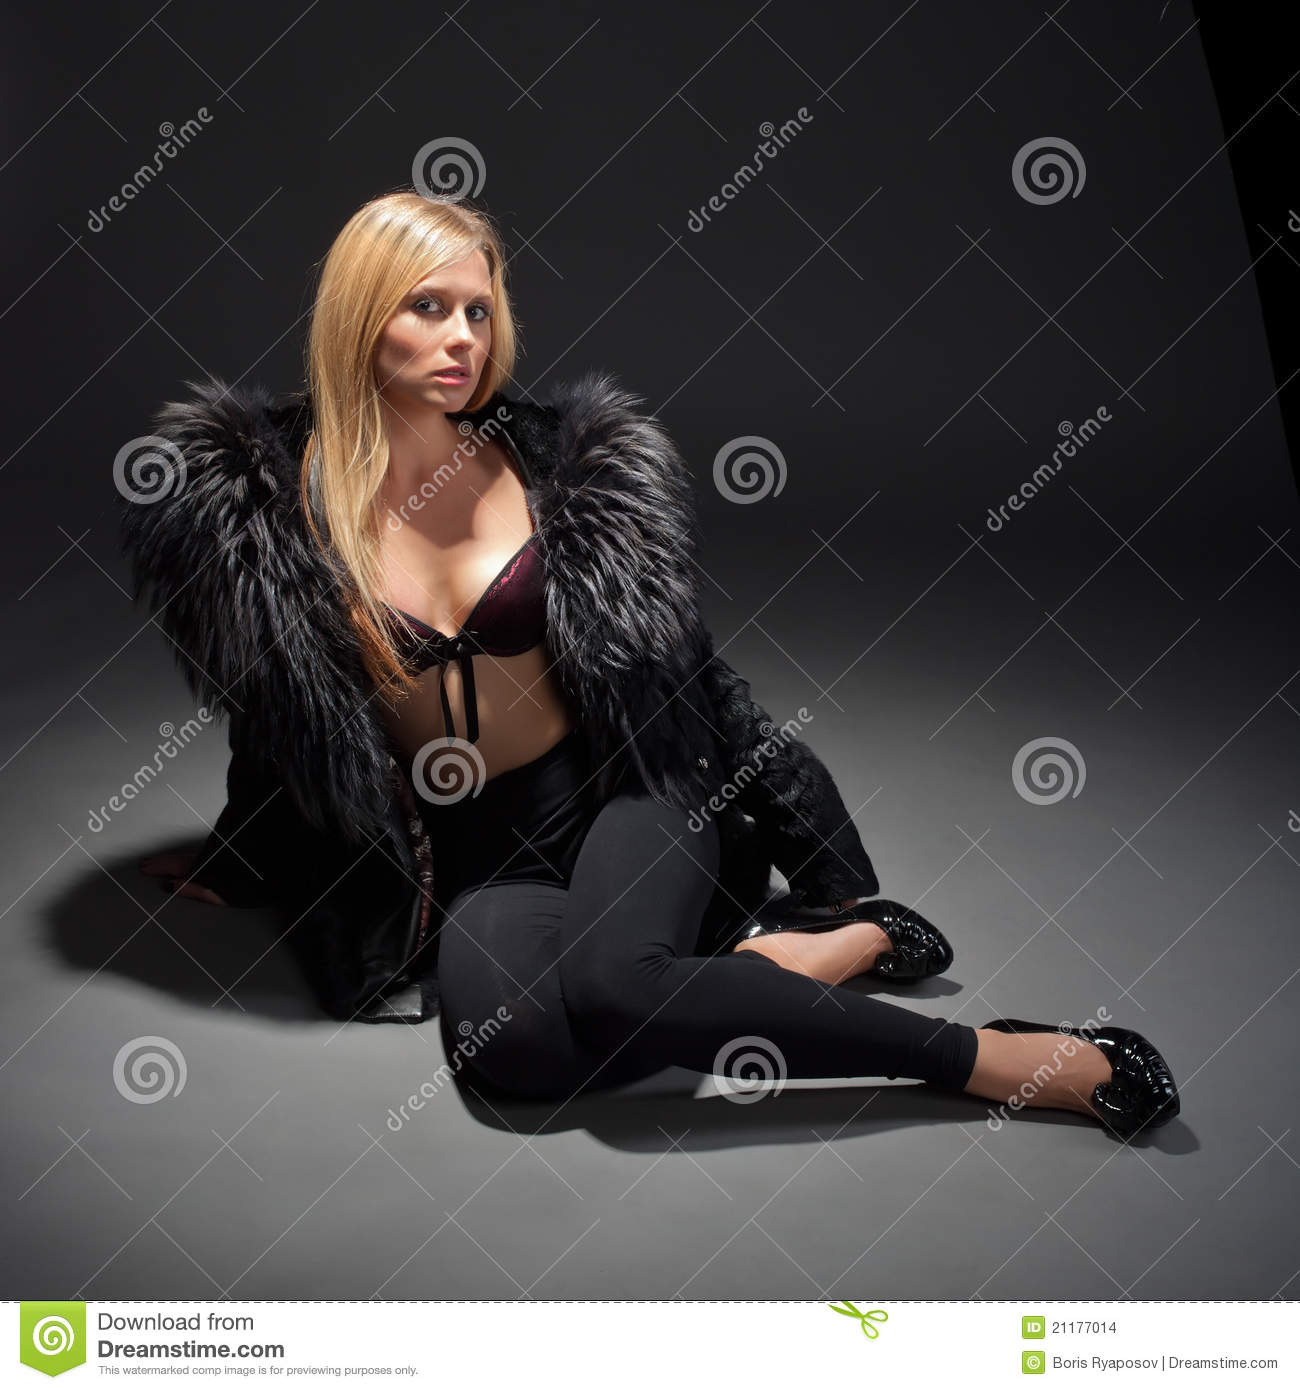 Fashion portrait of young woman